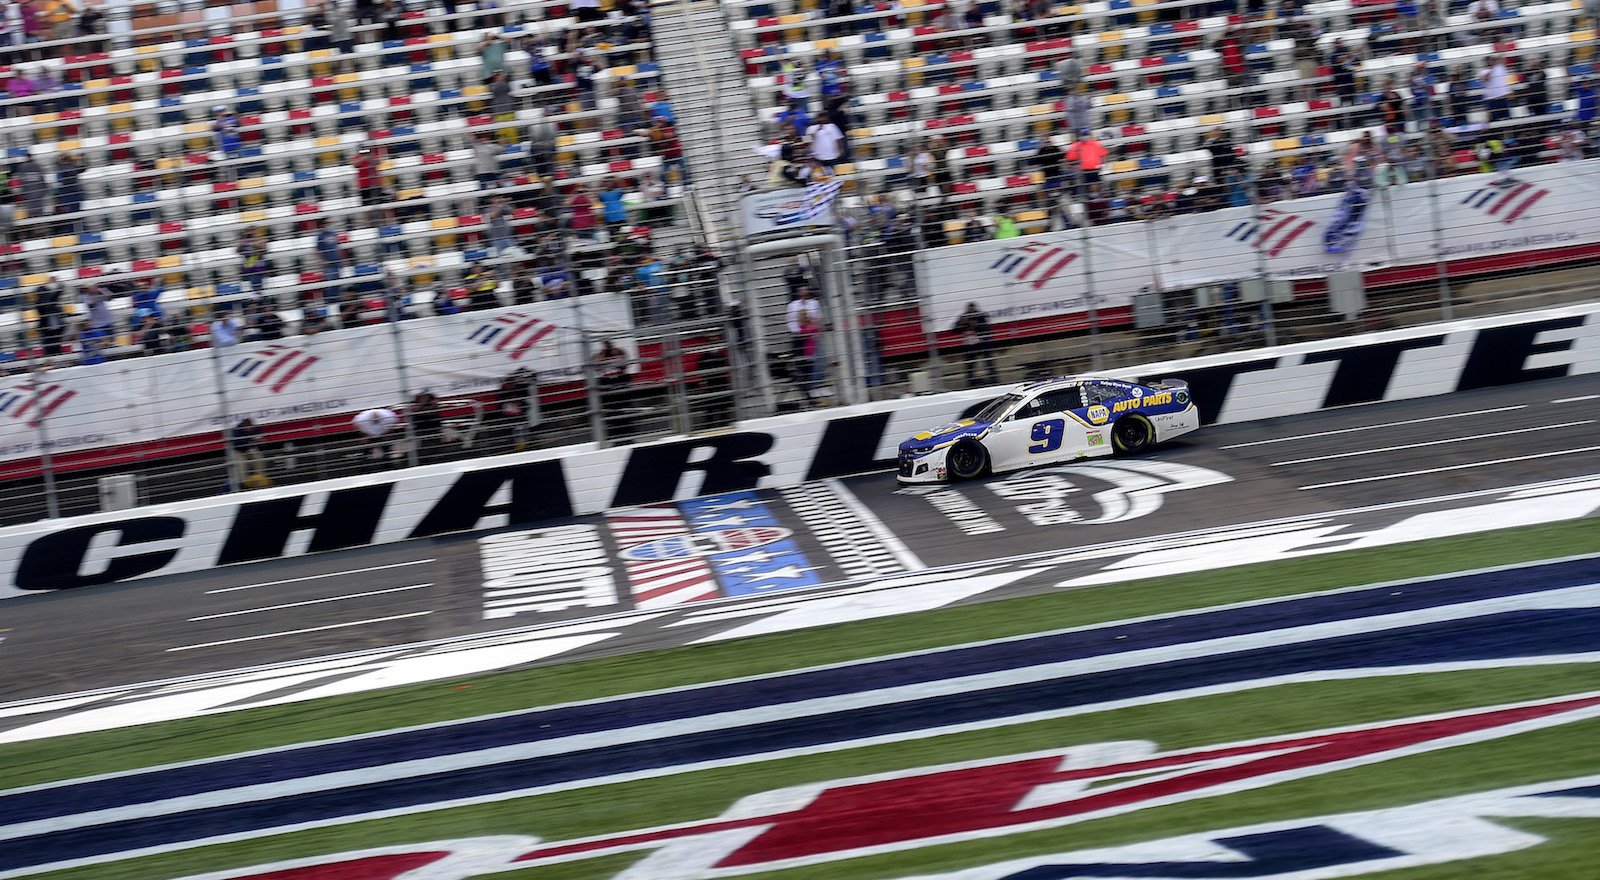 Four-in-a-row: Chase Elliott wins at Charlotte